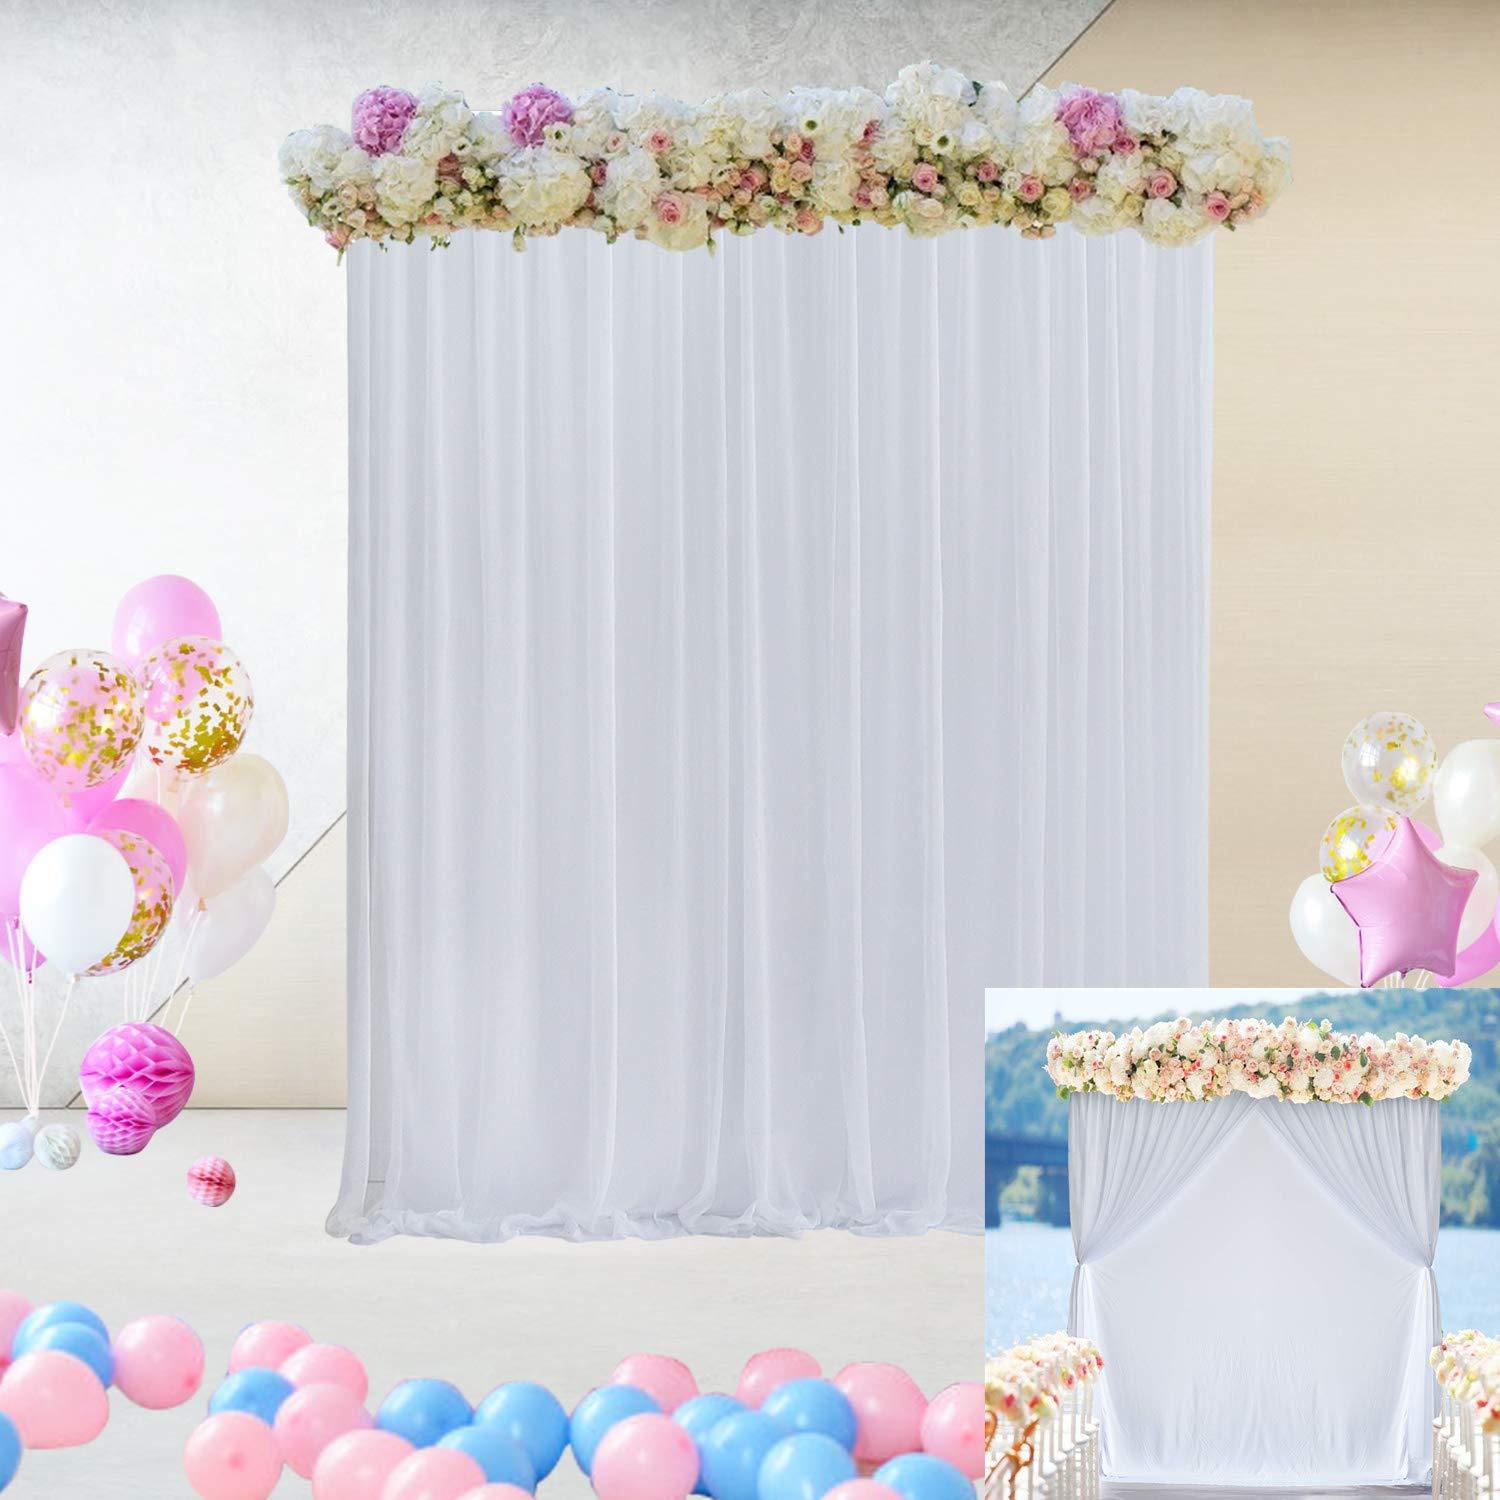 White Tulle Decorative Backdrop Curtain for Parties Baby Shower Two Layers Backdrop Drapes for Weddings Bridal Shower Photography Background Curtains for Photo Booth Birthday Party Decor 5 ft X 7 ft